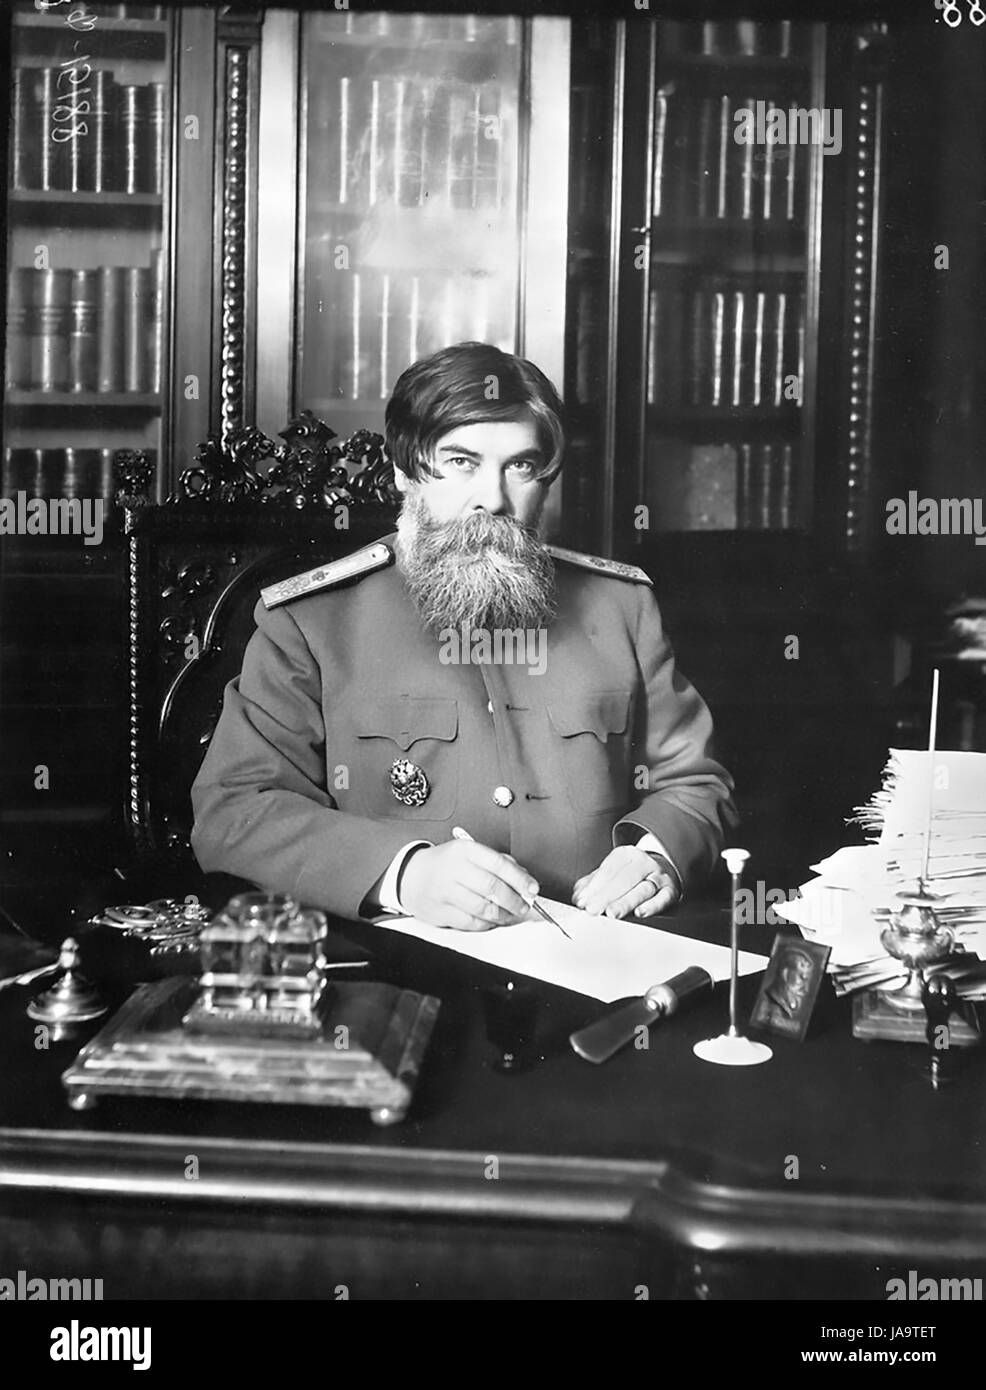 VLADIMIR BEKHTEREV  (1857-1927) Russian neurologist about 1913. Photo: Karl Bulla Stock Photo